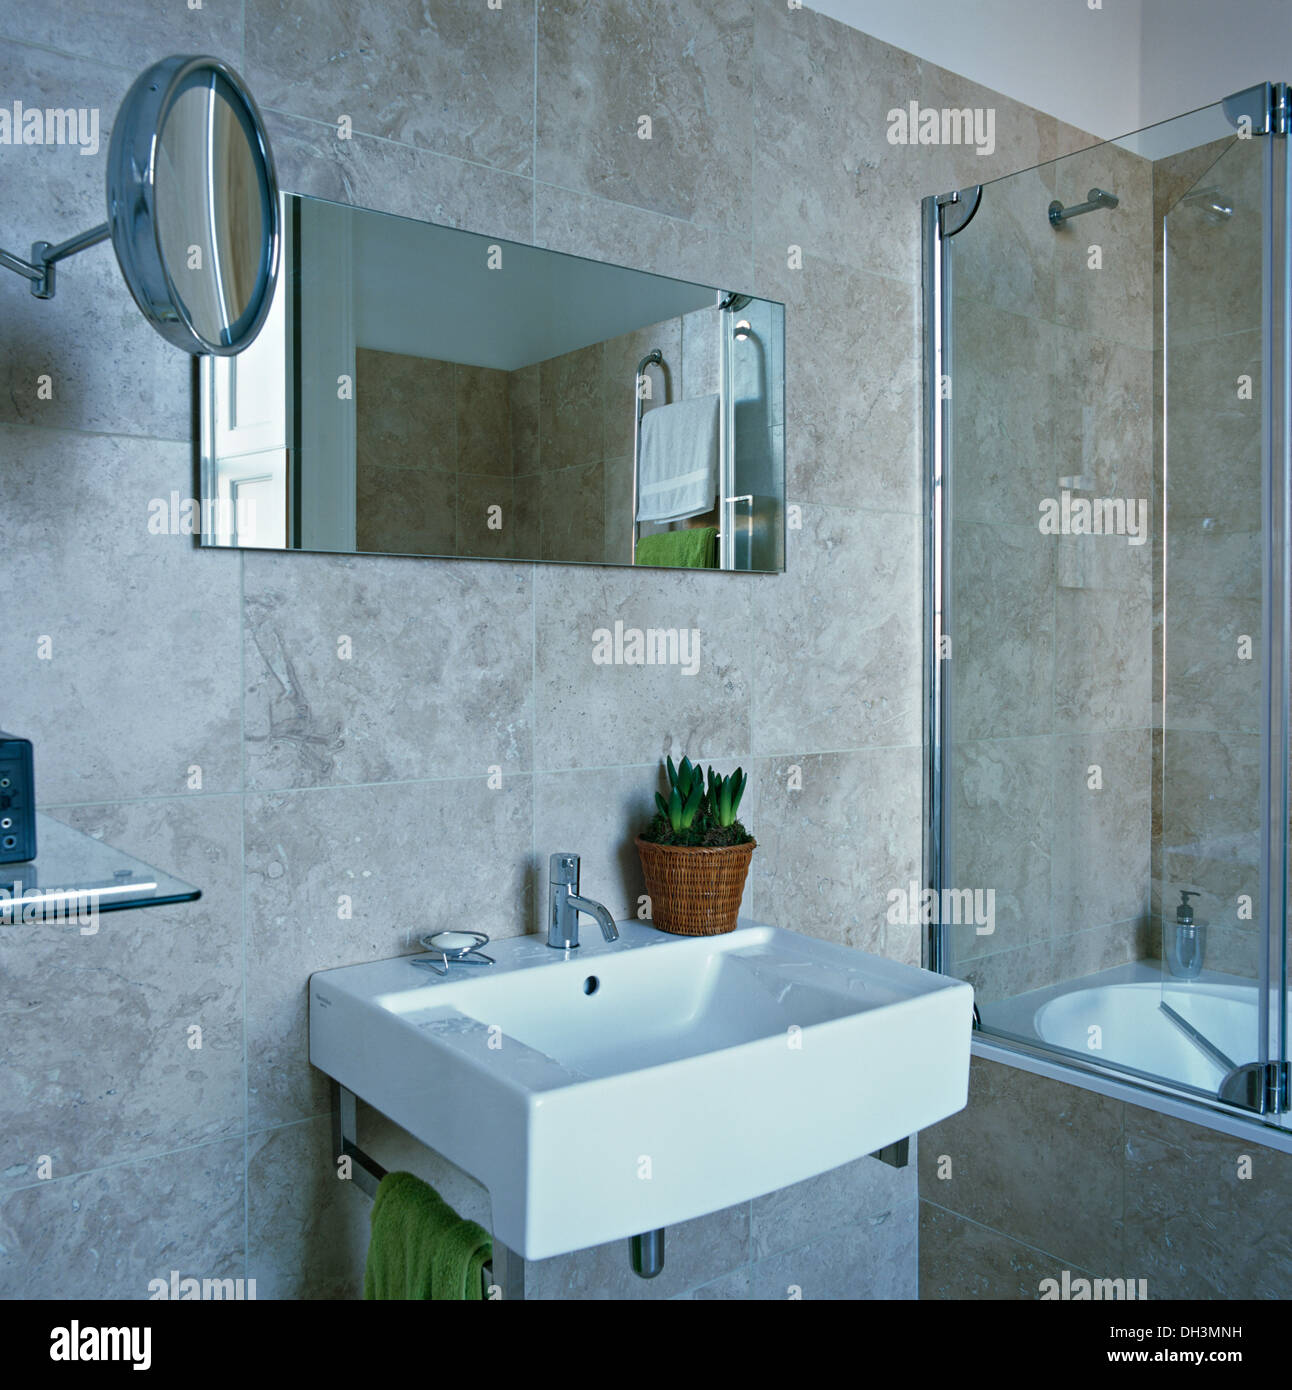 Bathroom basin mirror monochromatic immagini bathroom basin mirror monochromatic fotos stock - Vasca da bagno in vetro ...